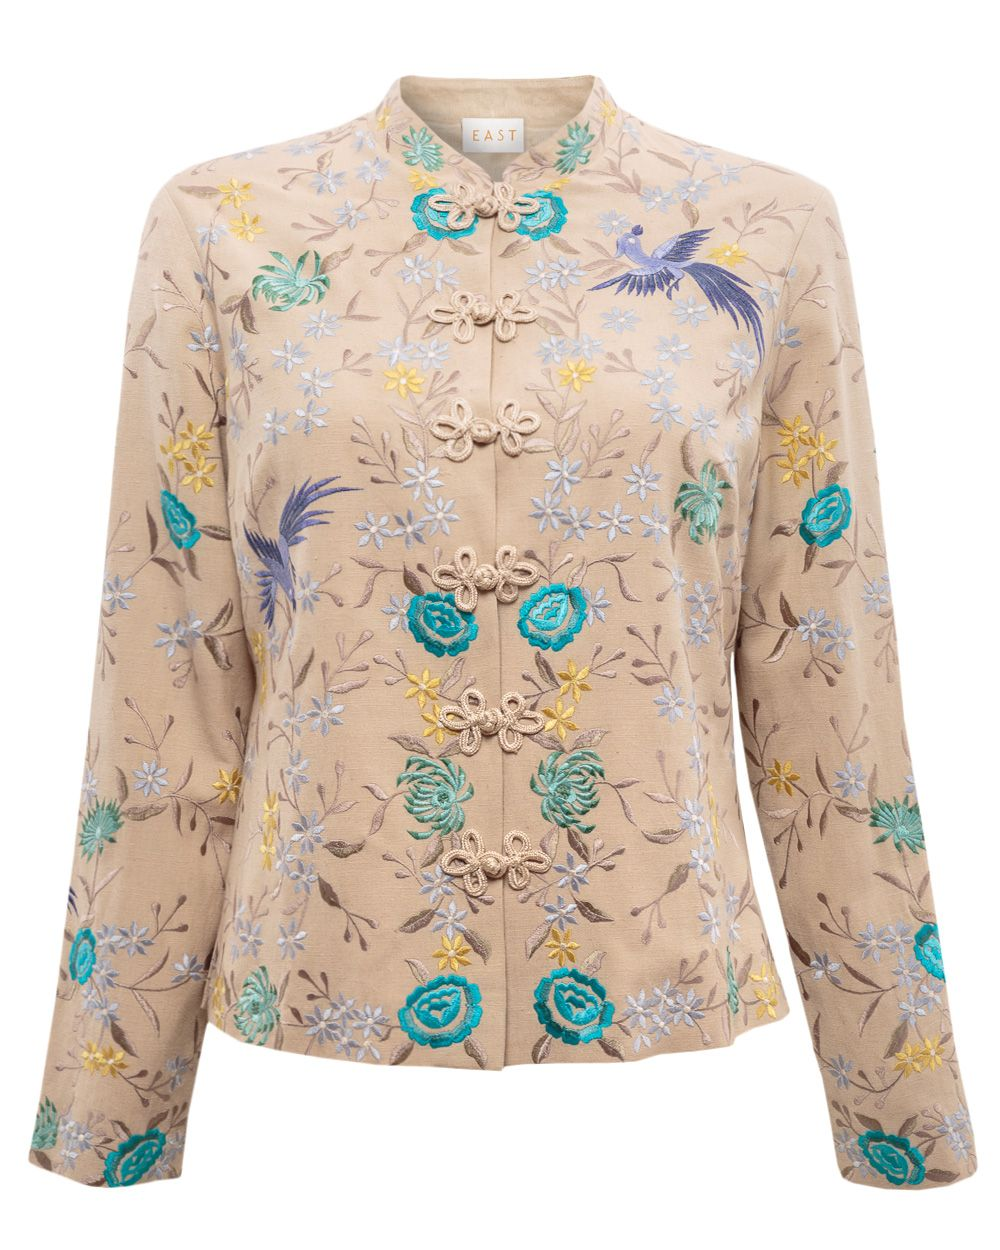 Florella embroidered jacket